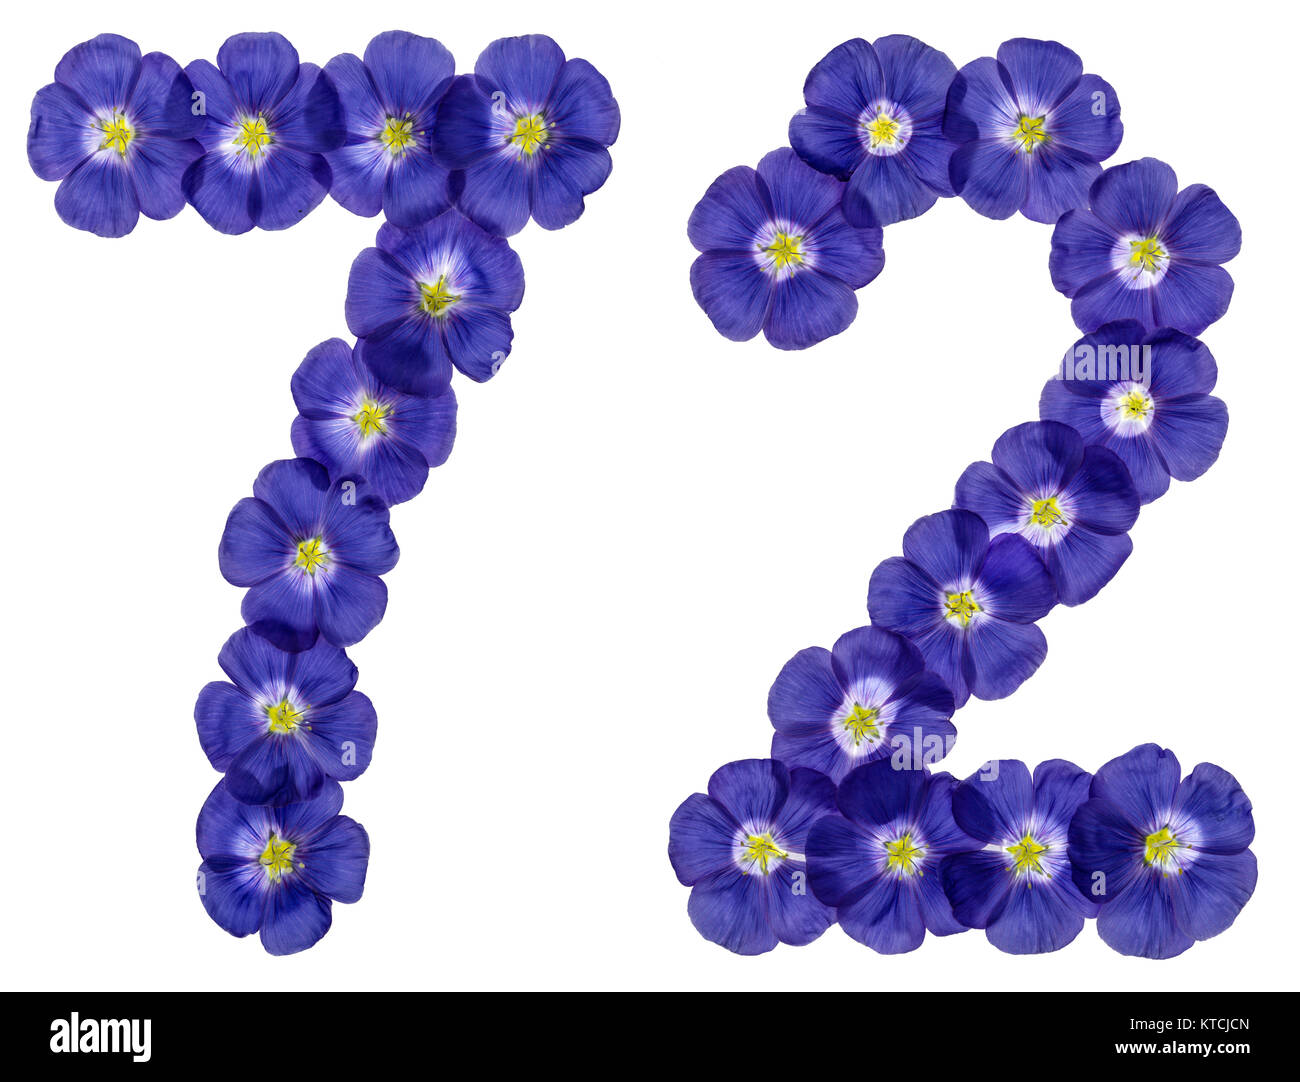 Arabic numeral 72, seventy two, from blue flowers of flax, isolated on white background Stock Photo